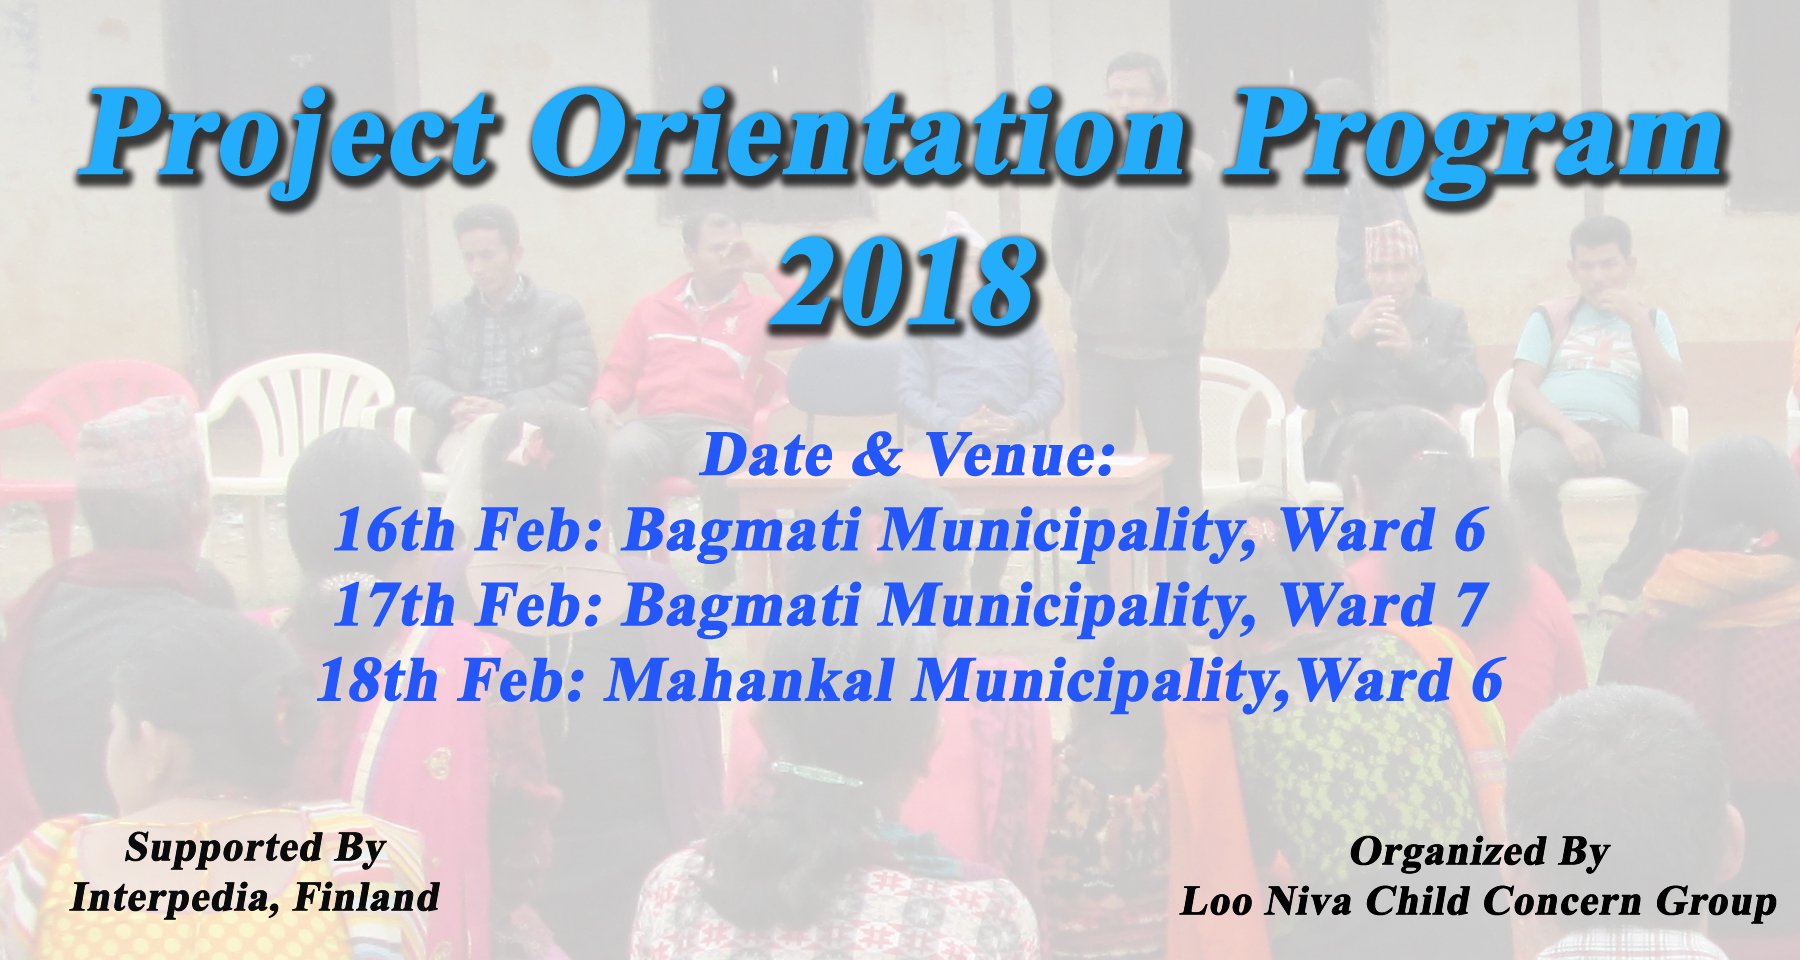 Project Orientation Program 2018